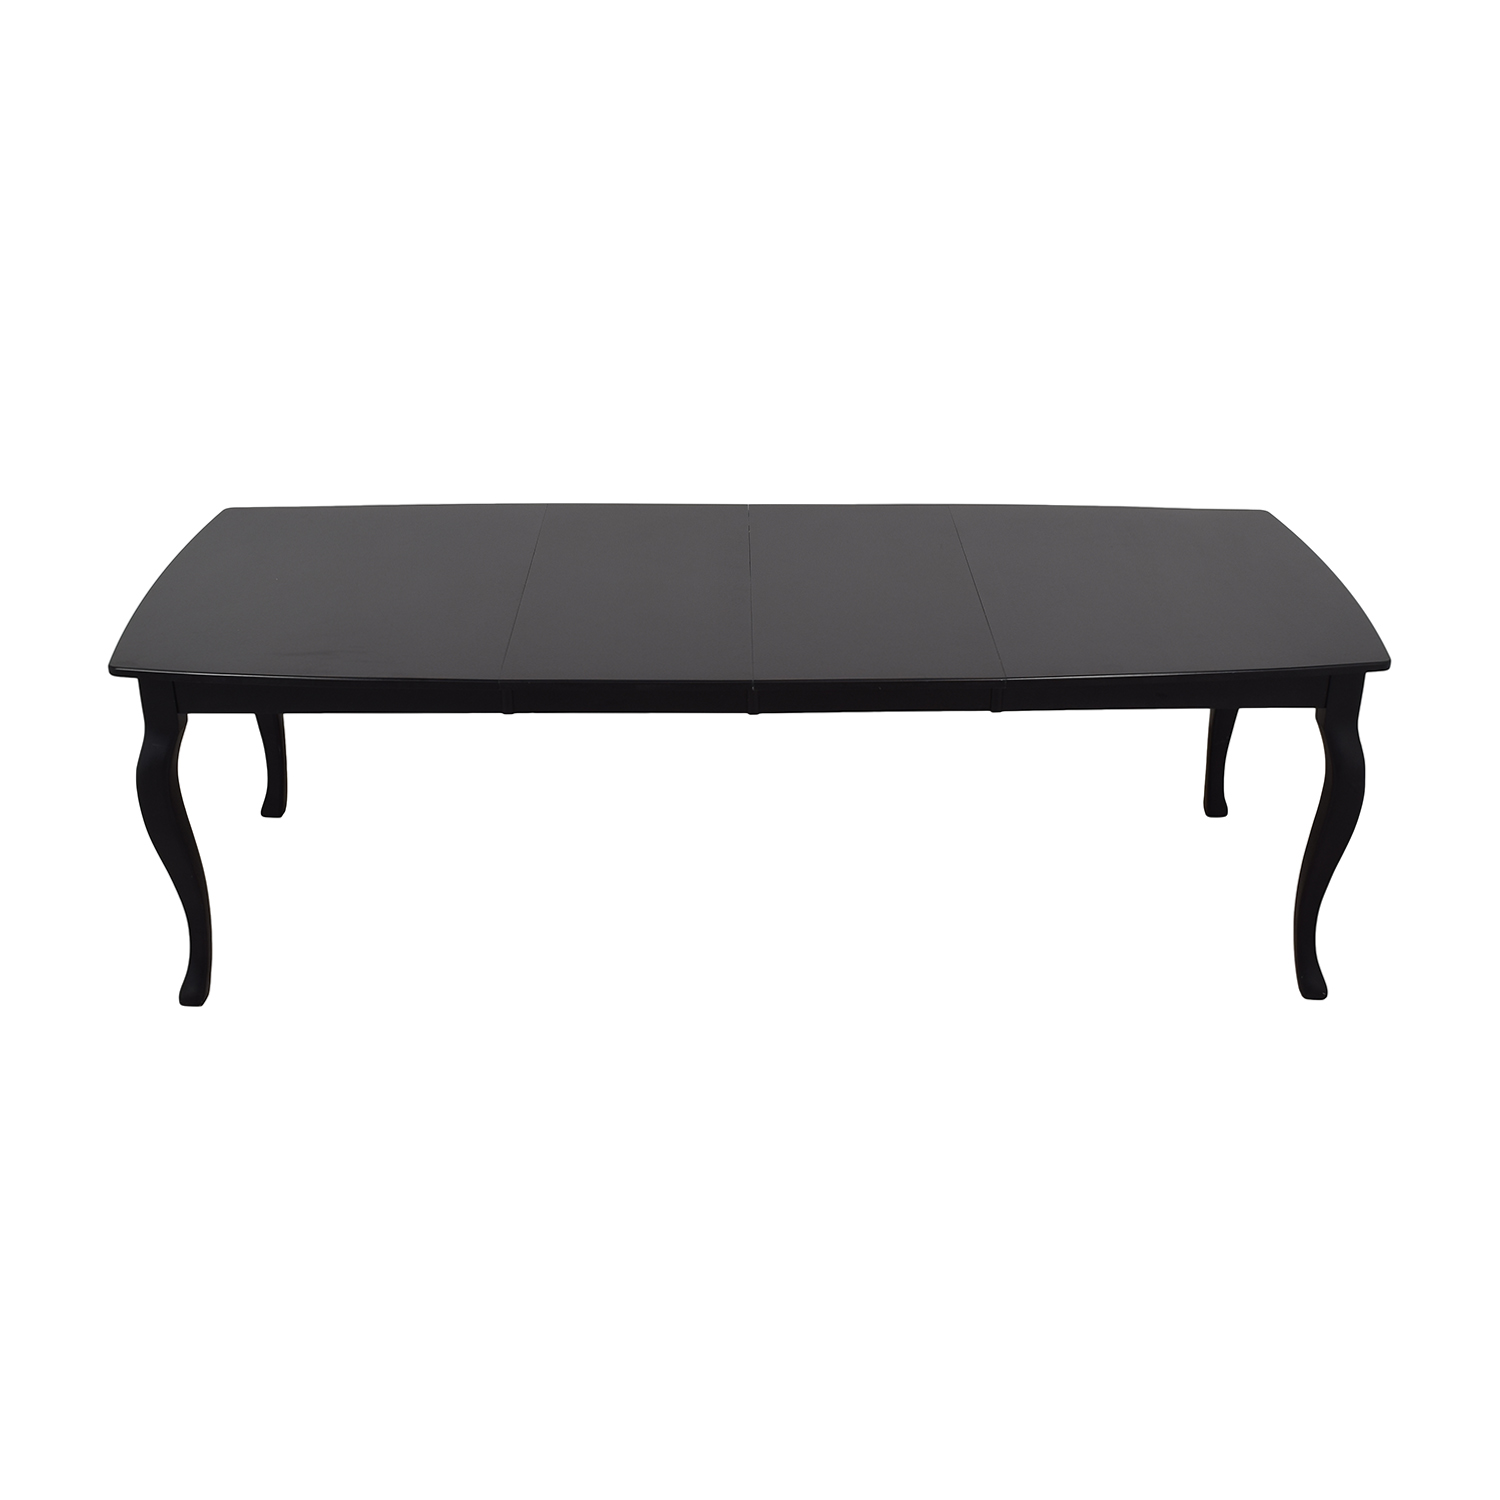 shop Macy's Dining Table Macy's Tables